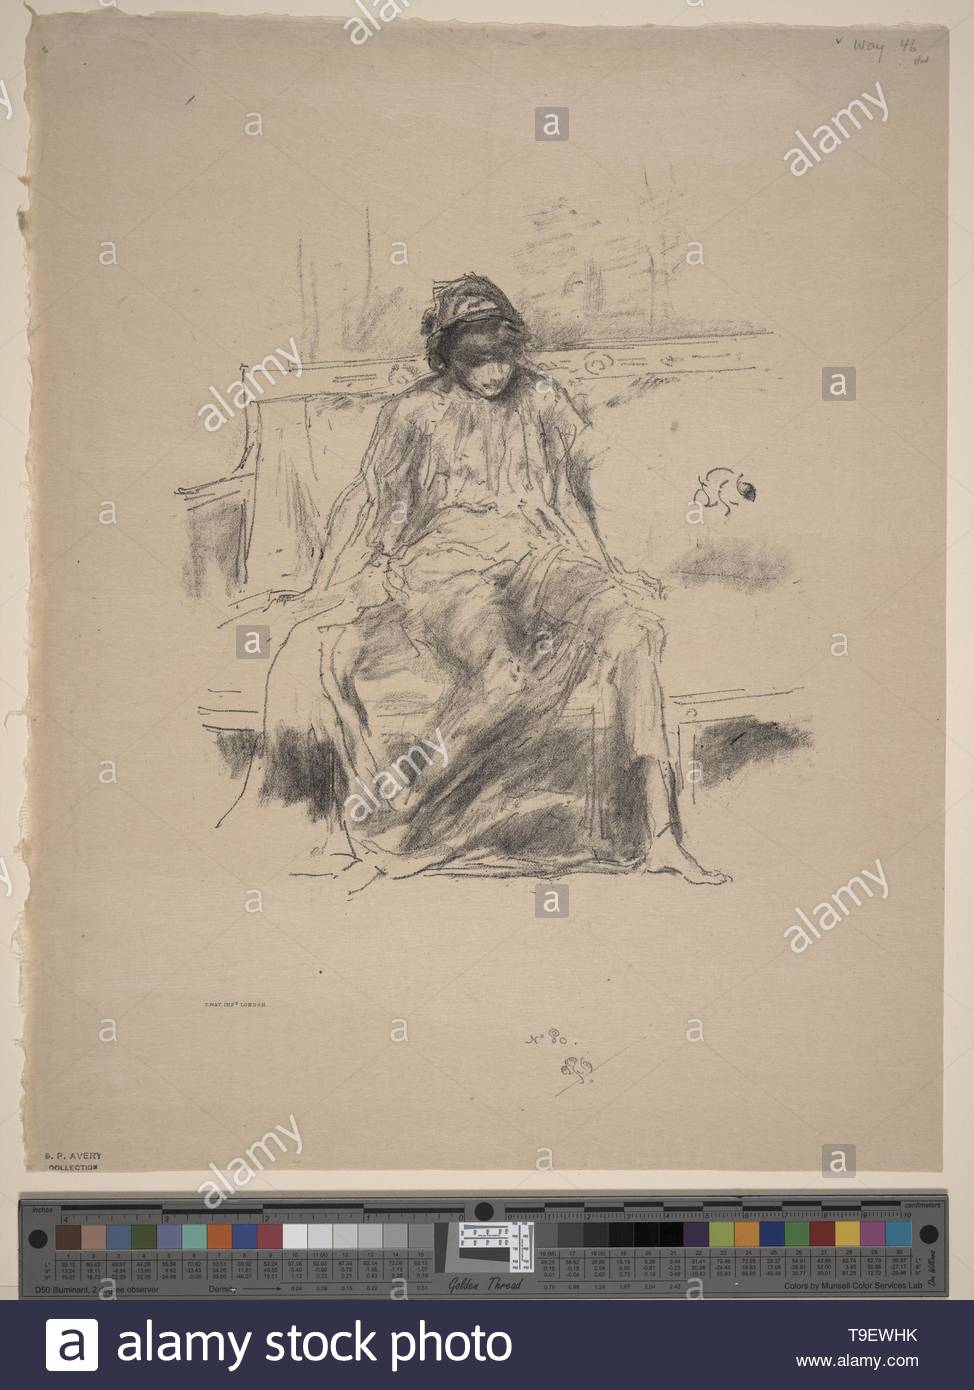 Whistler,JamesMcNeill(1834-1903)-The draped figure, seated - Stock Image